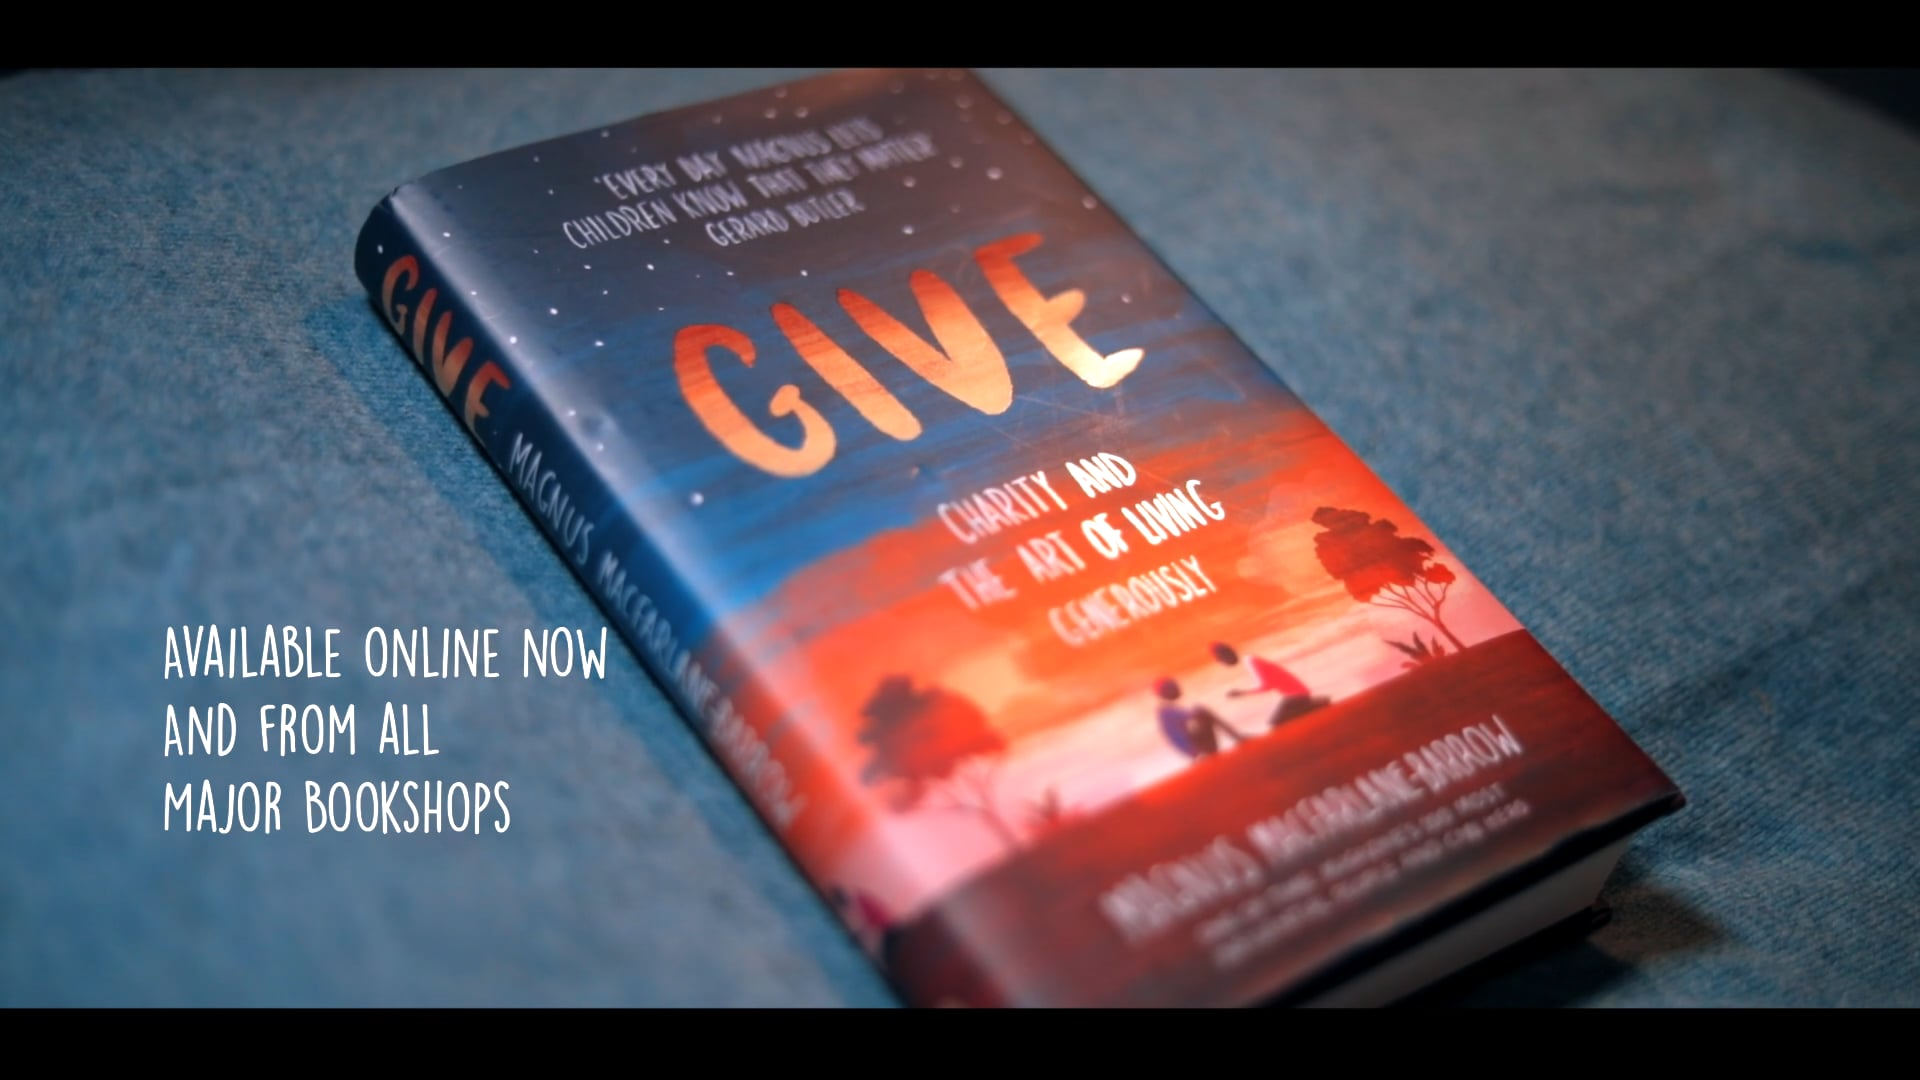 GIVE - Book Trailer